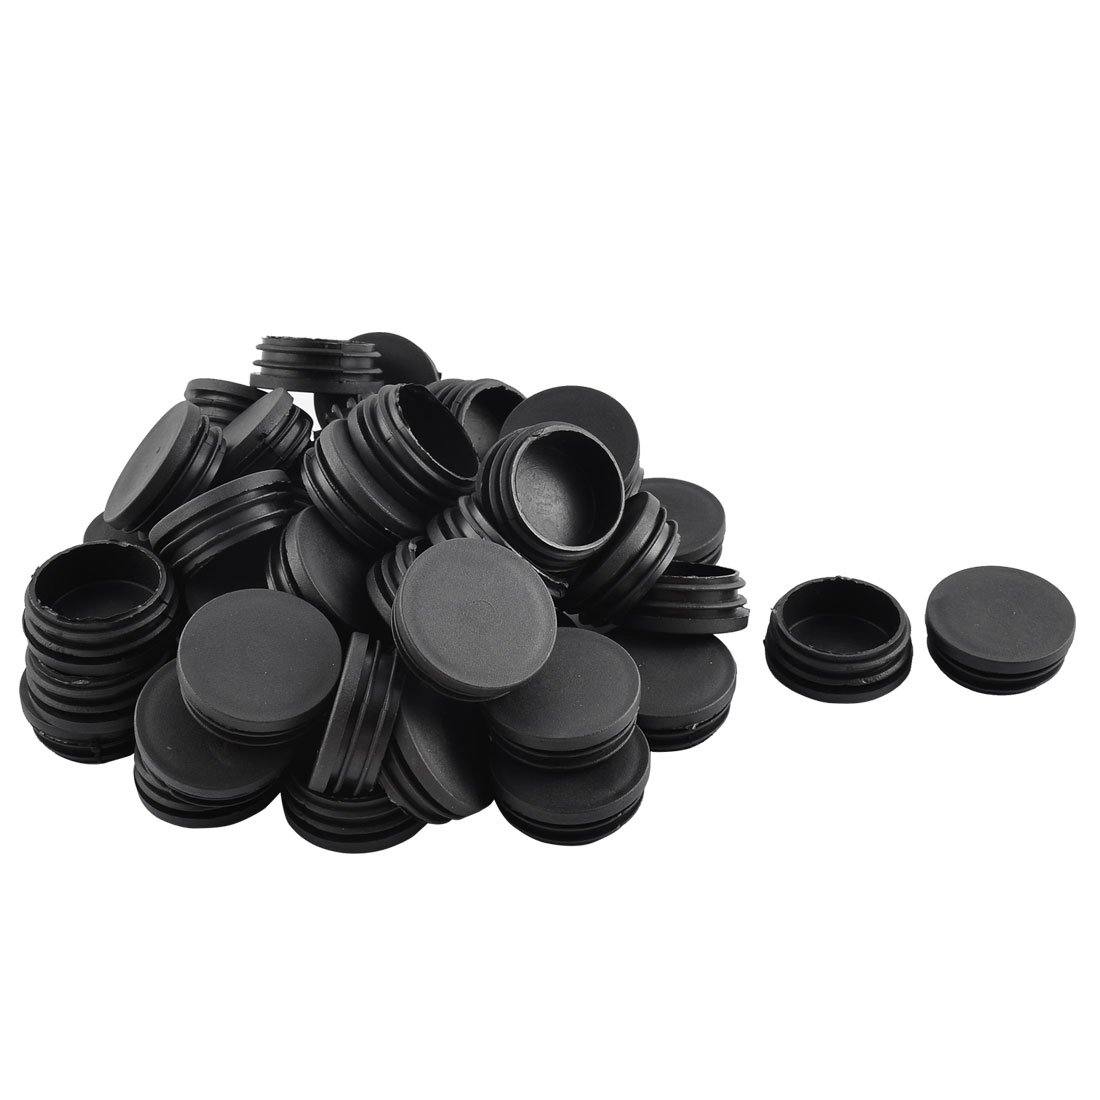 Home Plastic Round Shaped Furniture Table Chair Leg Feet Tube Insert Black 50 Pcs